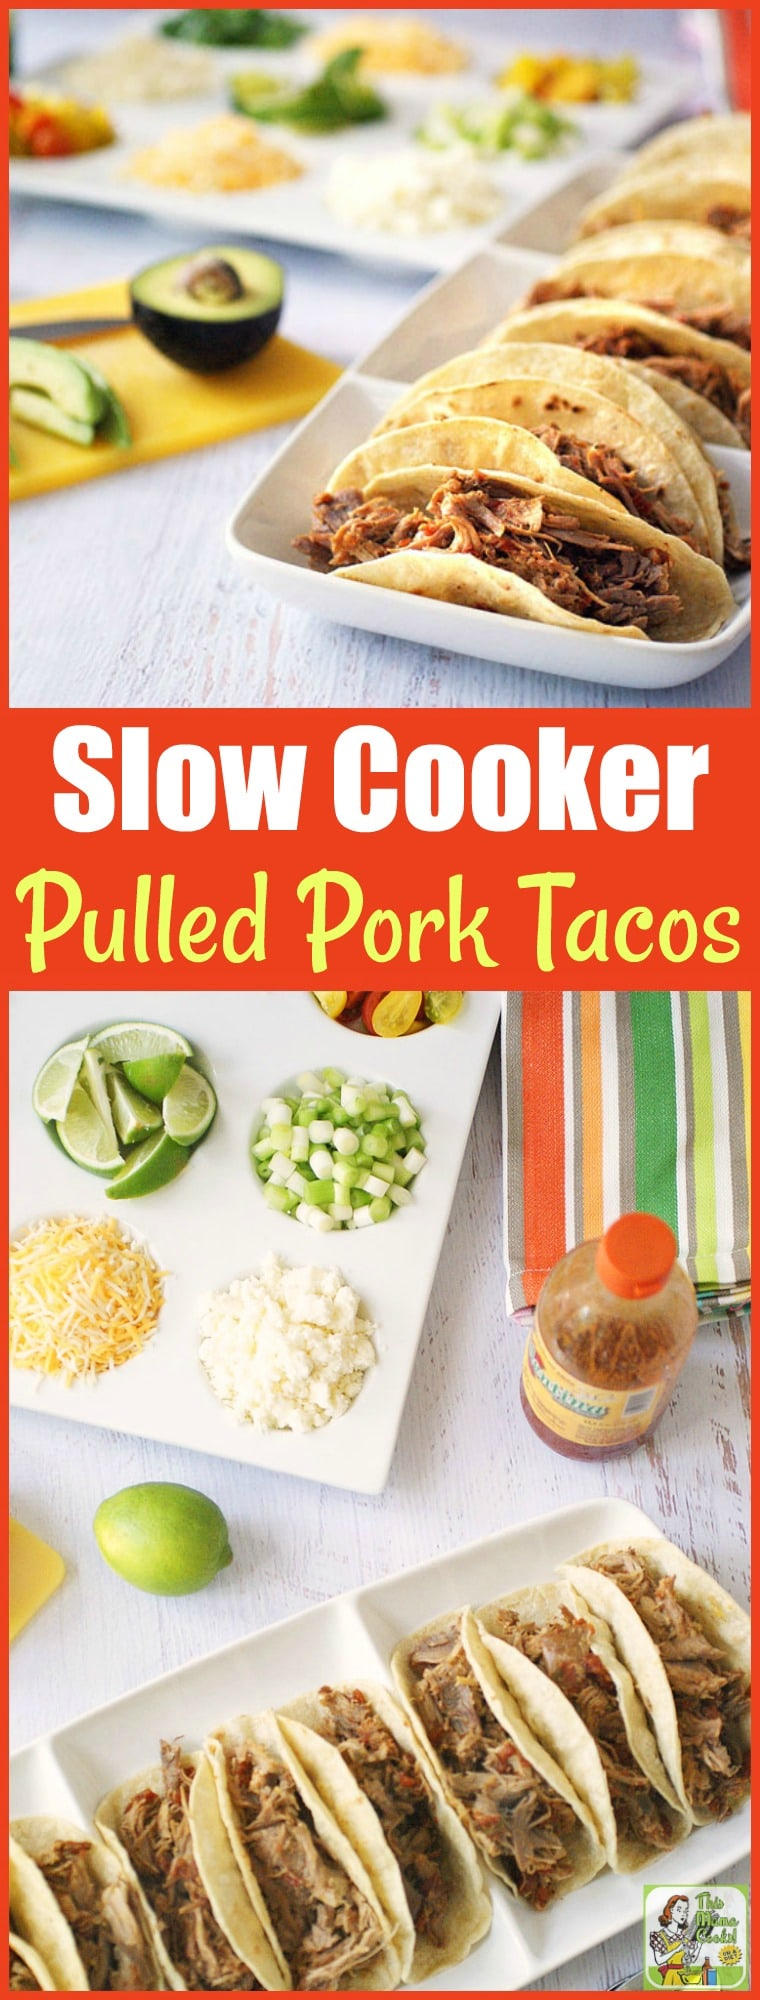 Slow Cooker Pulled Pork Tacos Recipe